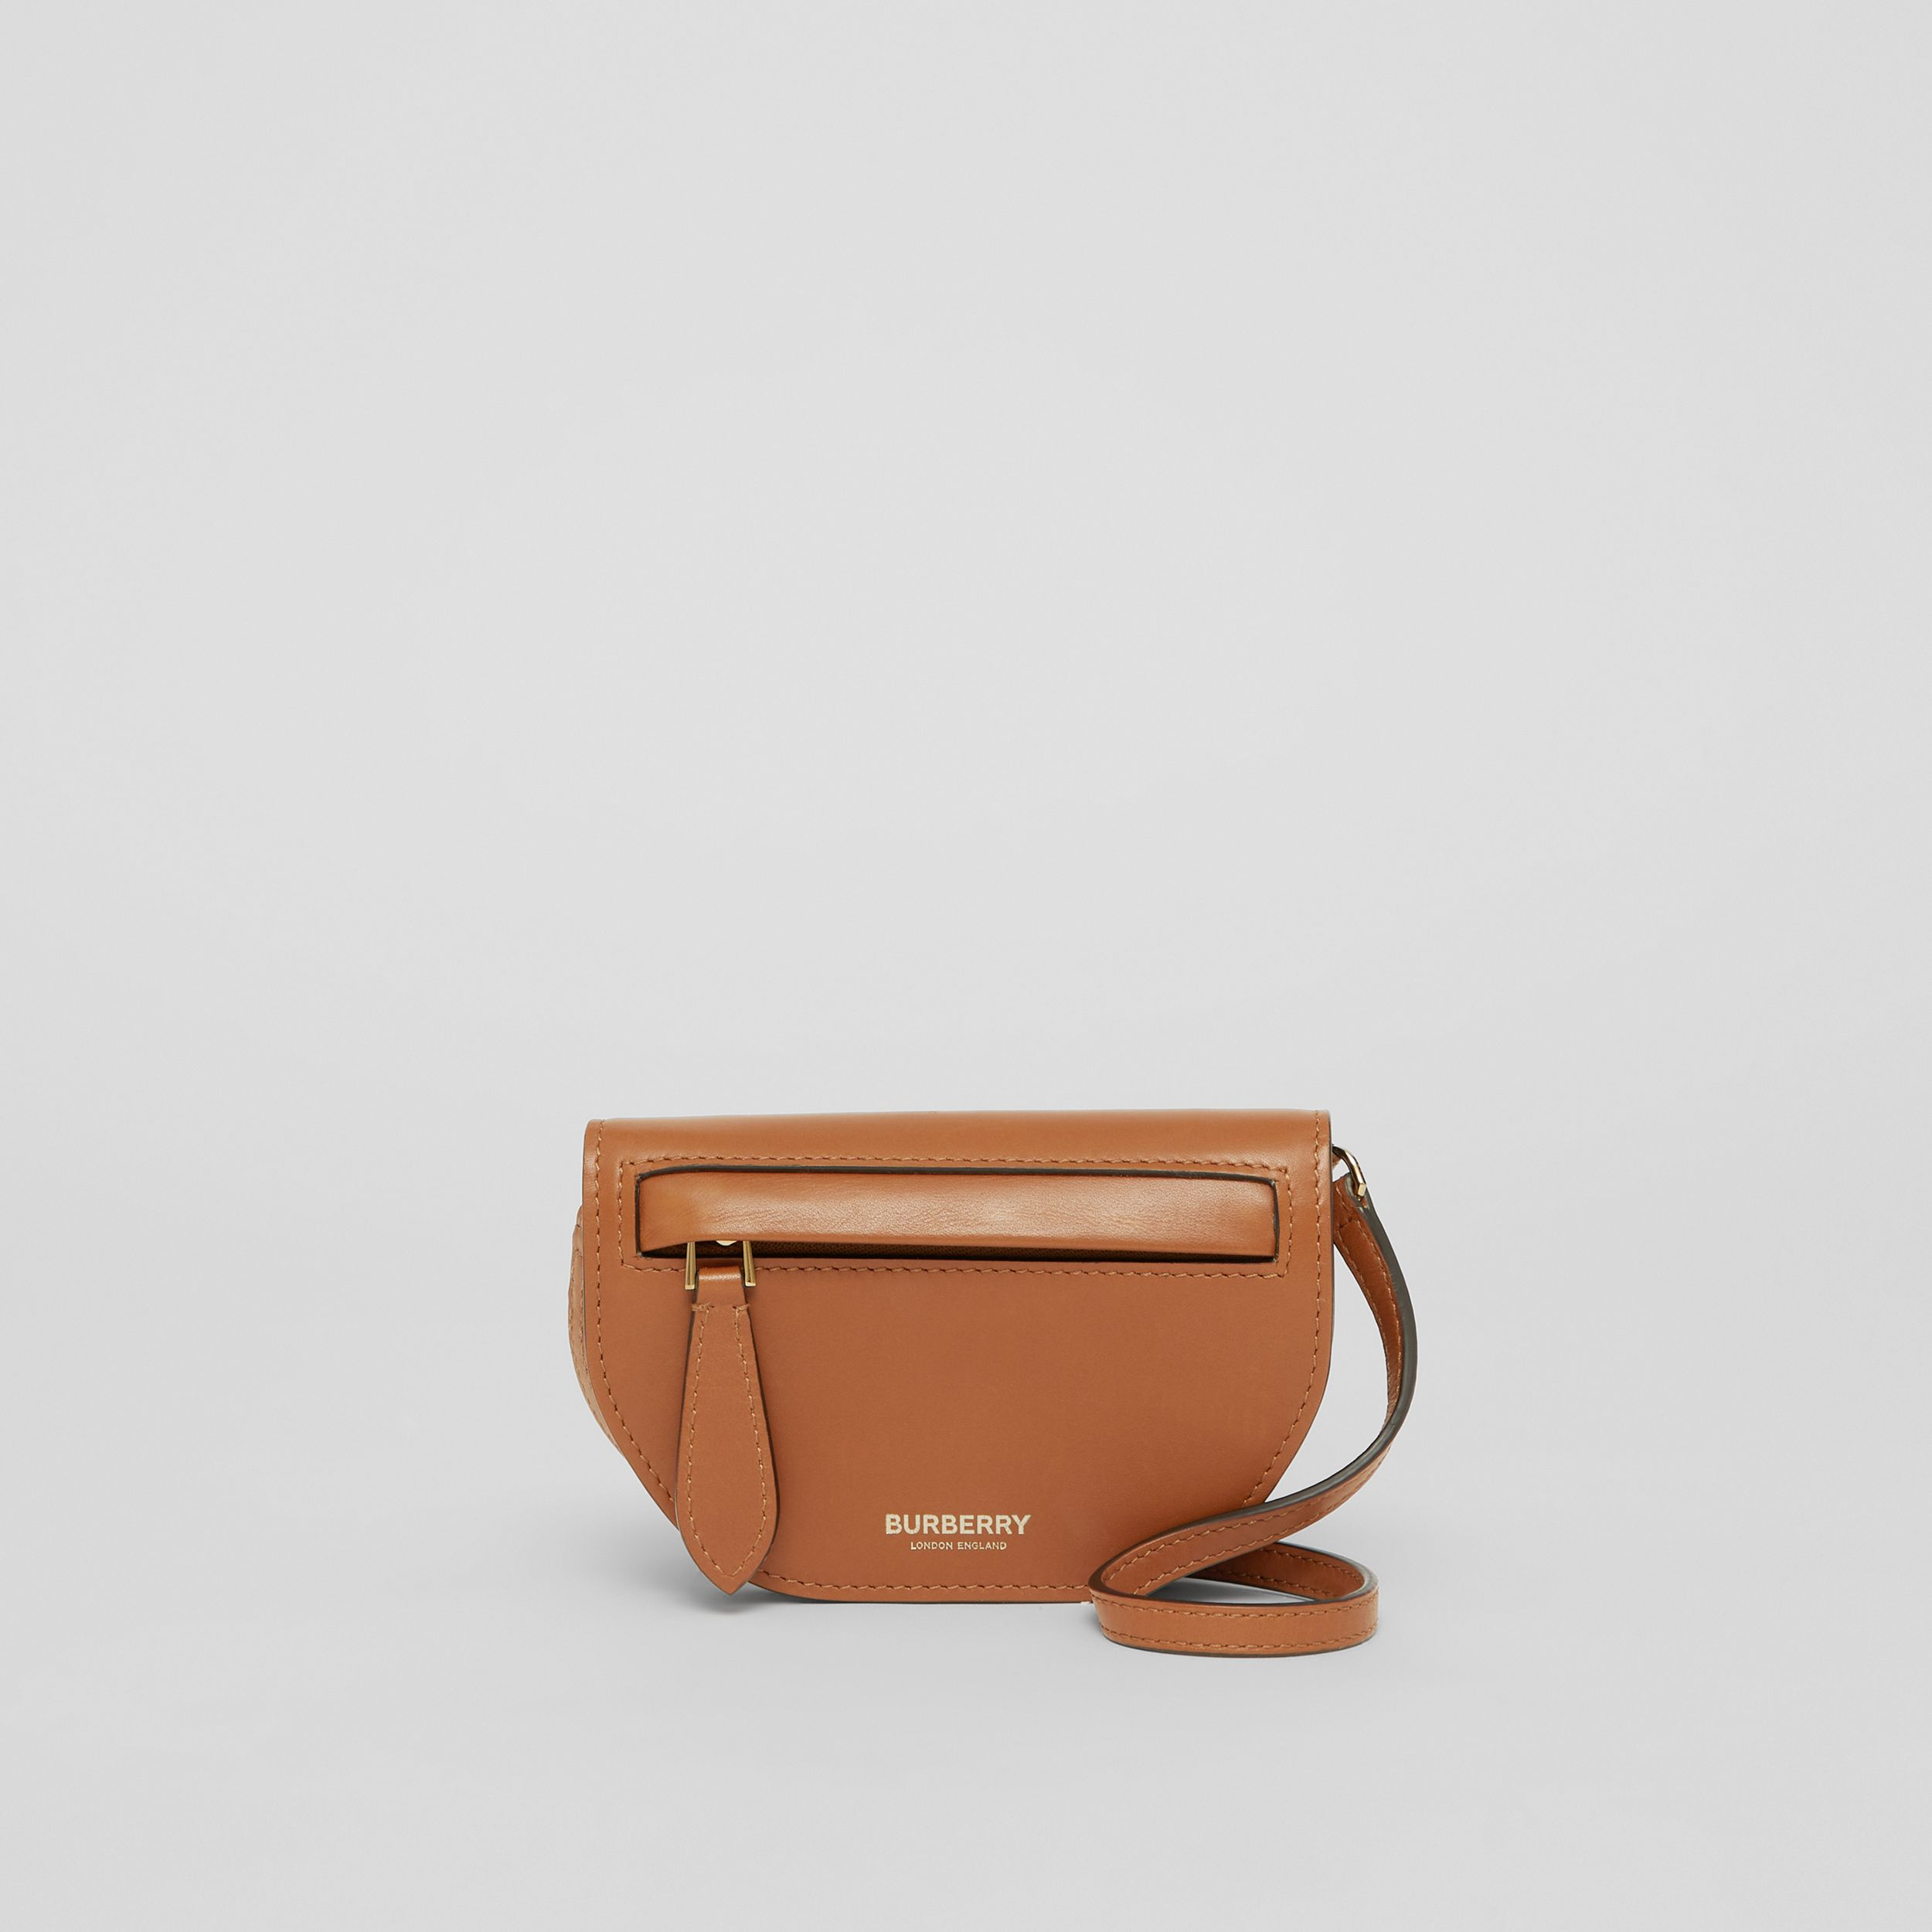 Leather Olympia Card Case with Detachable Strap in Warm Tan | Burberry - 1